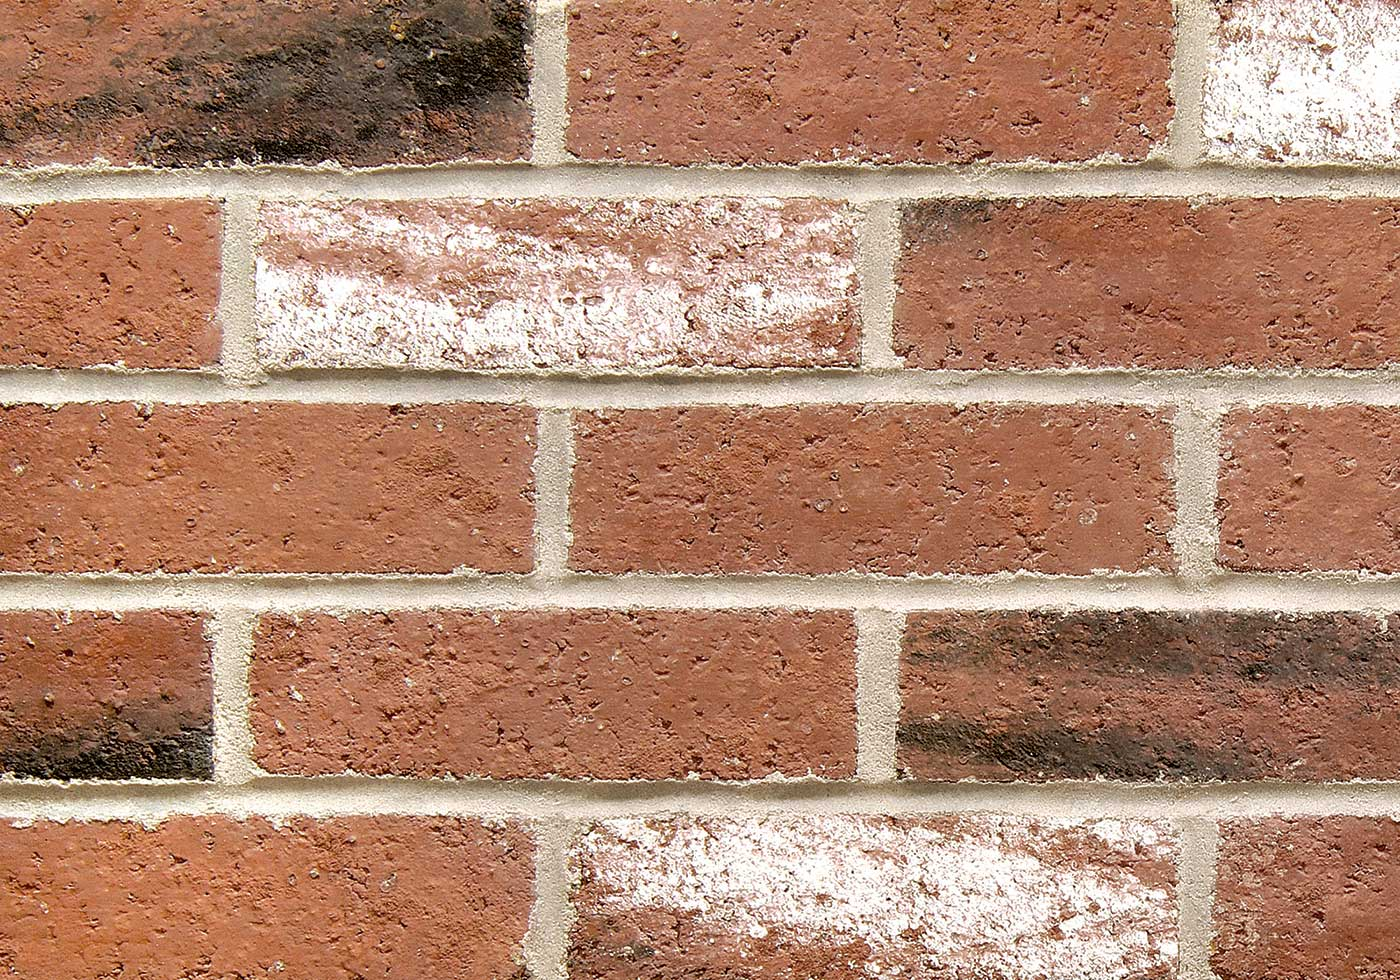 Williamsburg brick close-up